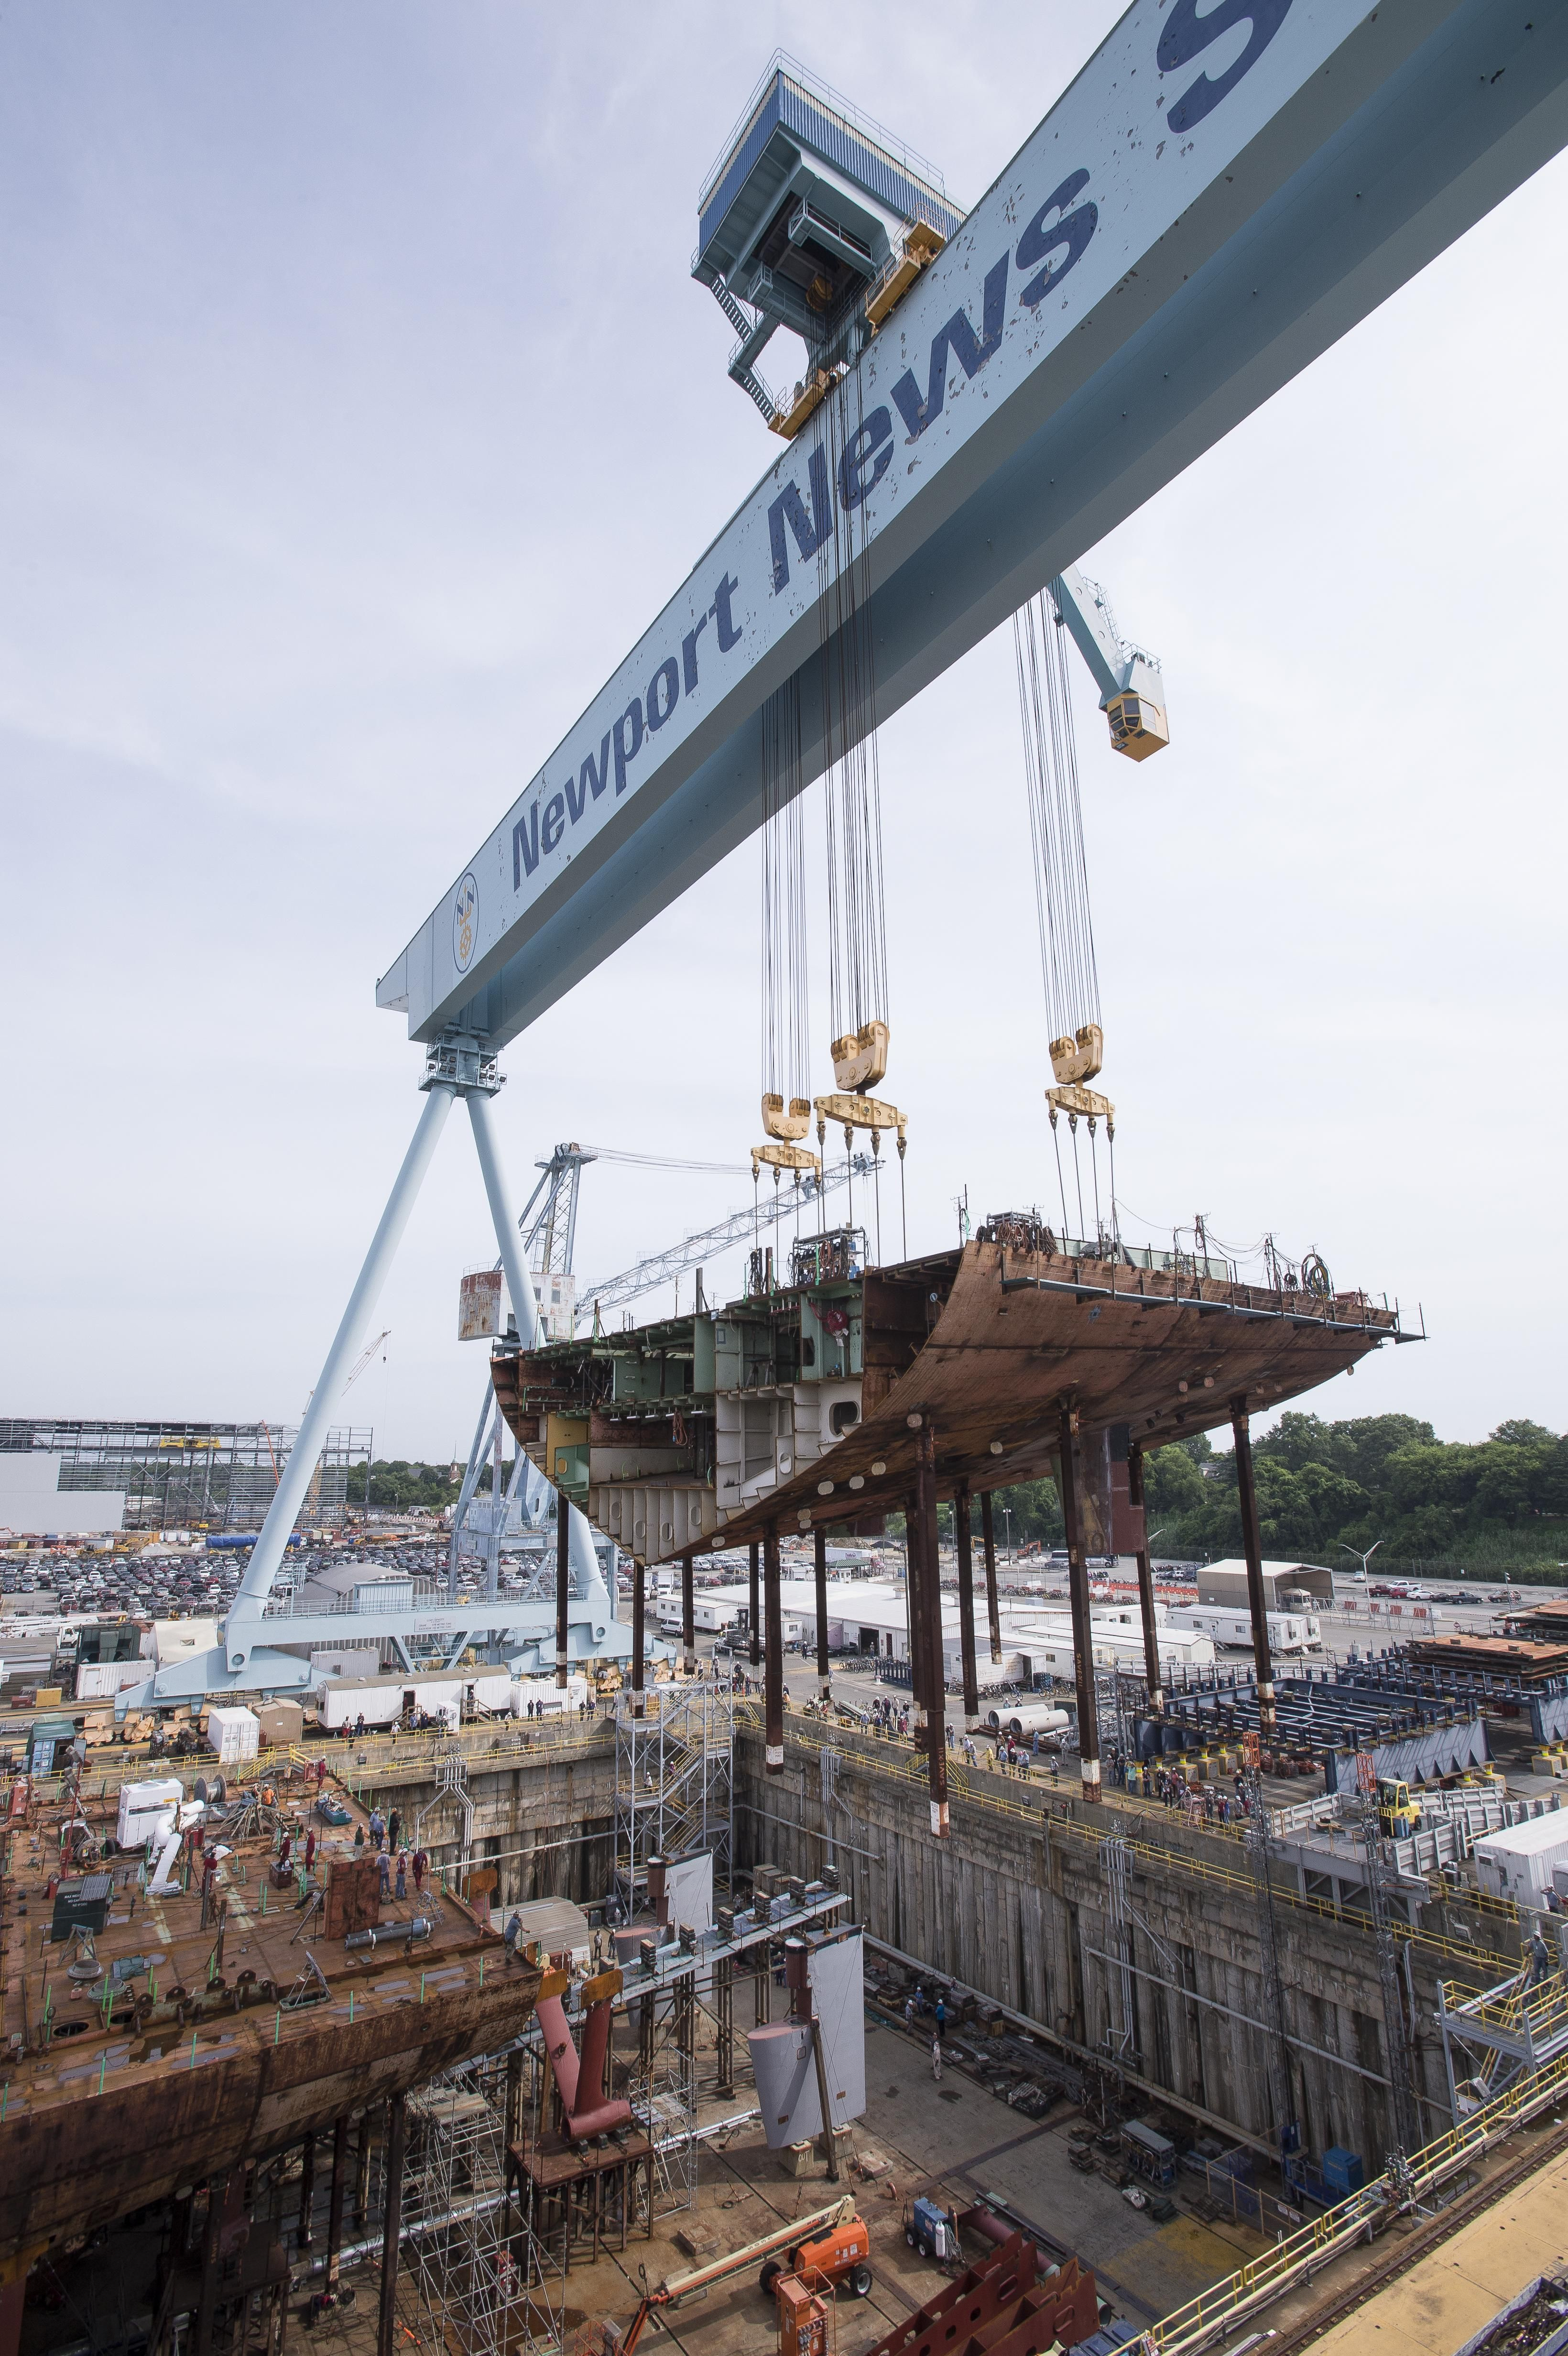 A crane moves the lower stern into place of USS John F Kennedy CVN